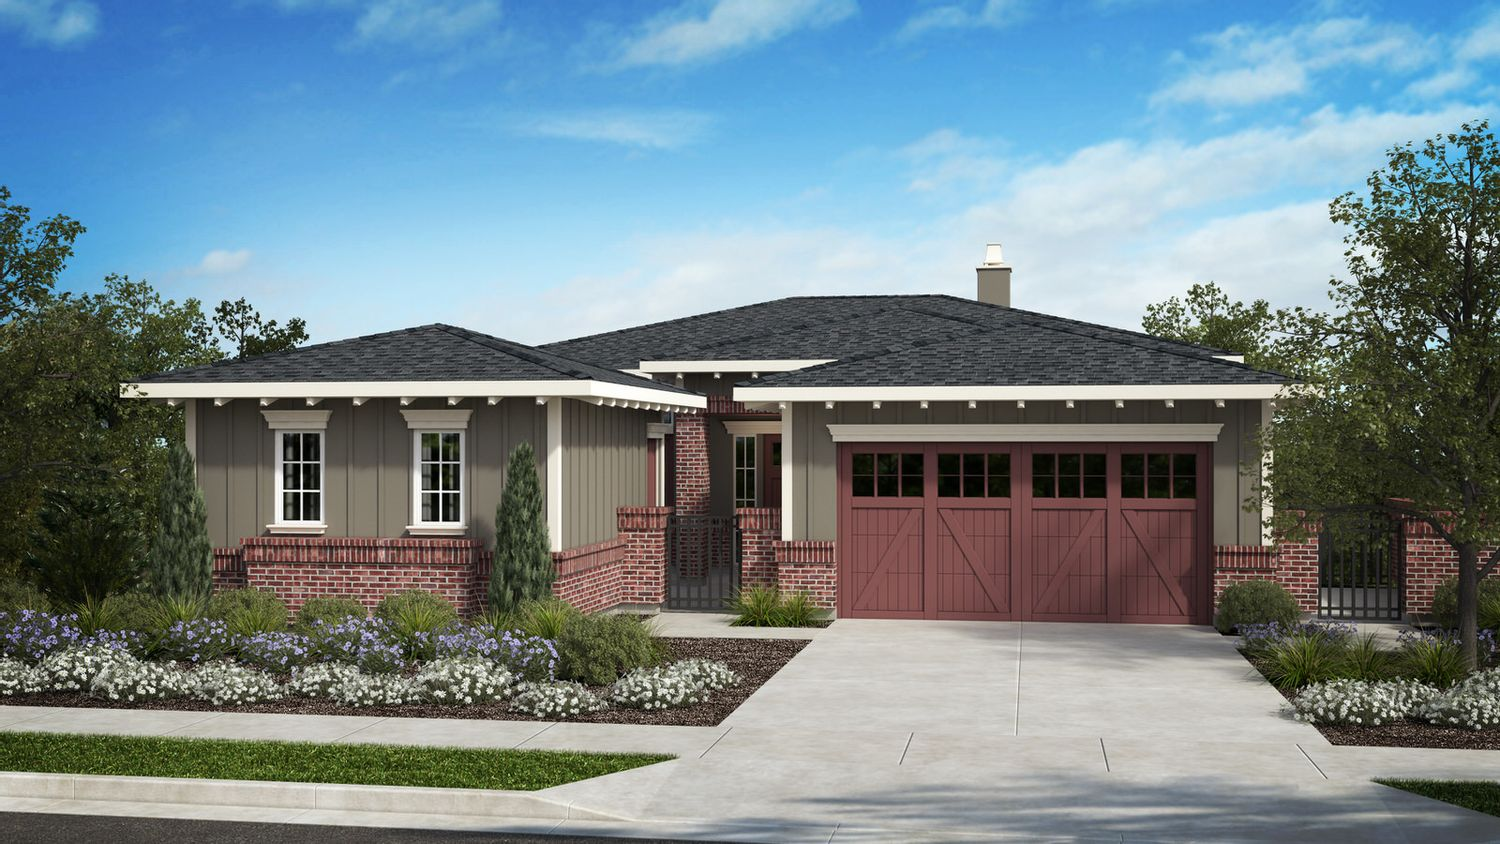 Single Family for Active at Wilder In Orinda - Residence 10f Plan 12 Wilder Road Orinda, California 94563 United States